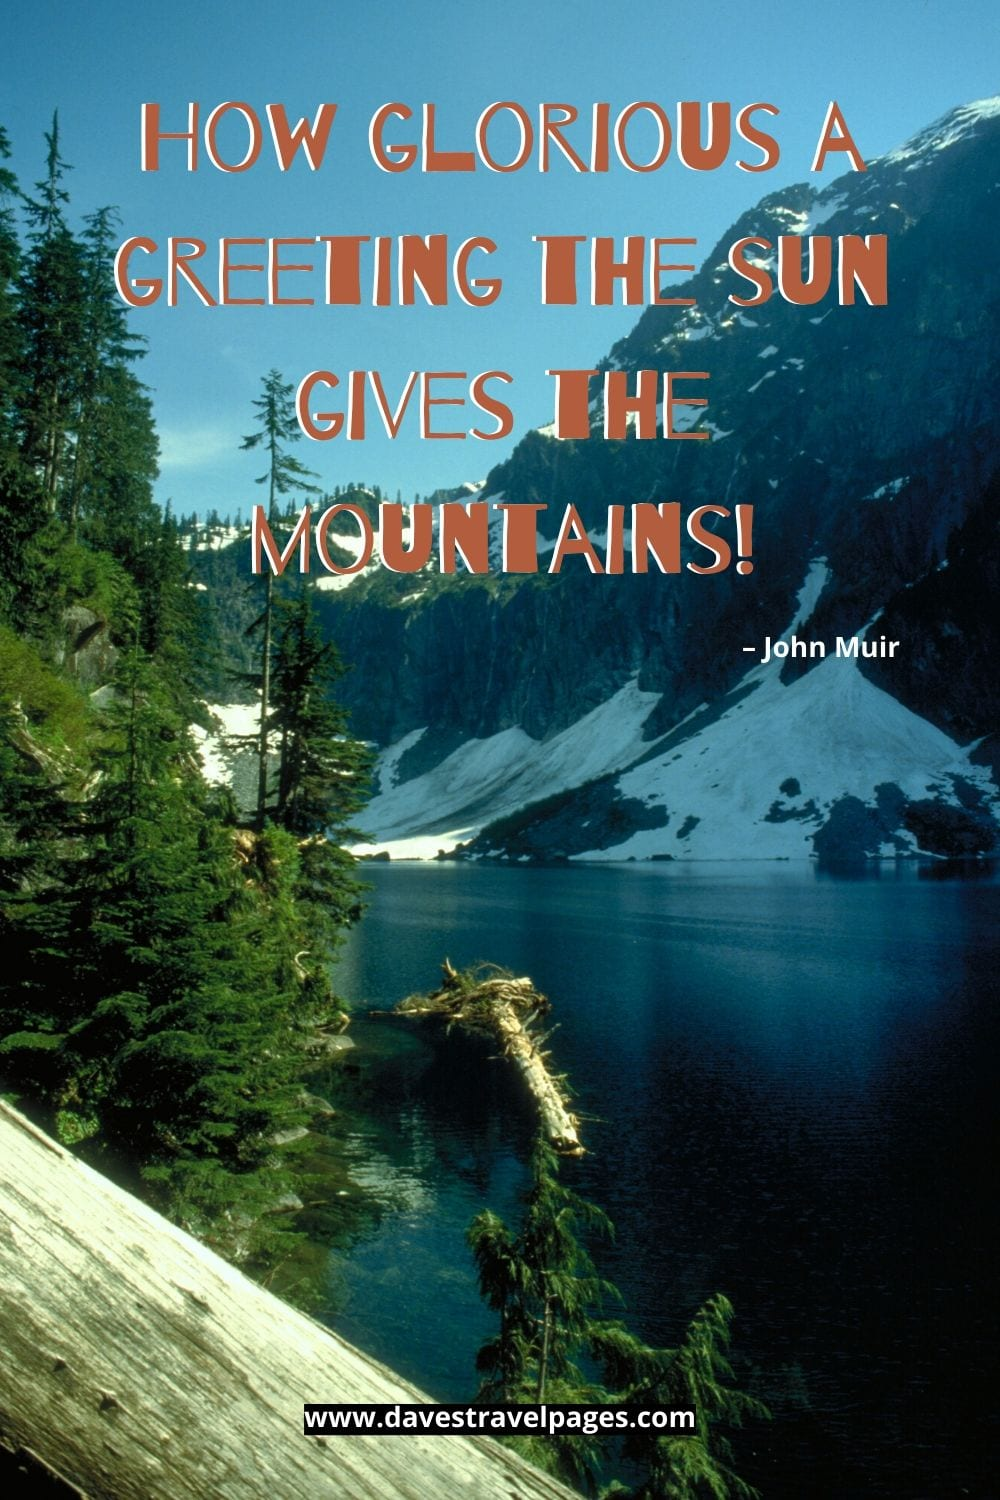 """""""How glorious a greeting the sun gives the mountains!"""" – John Muir"""